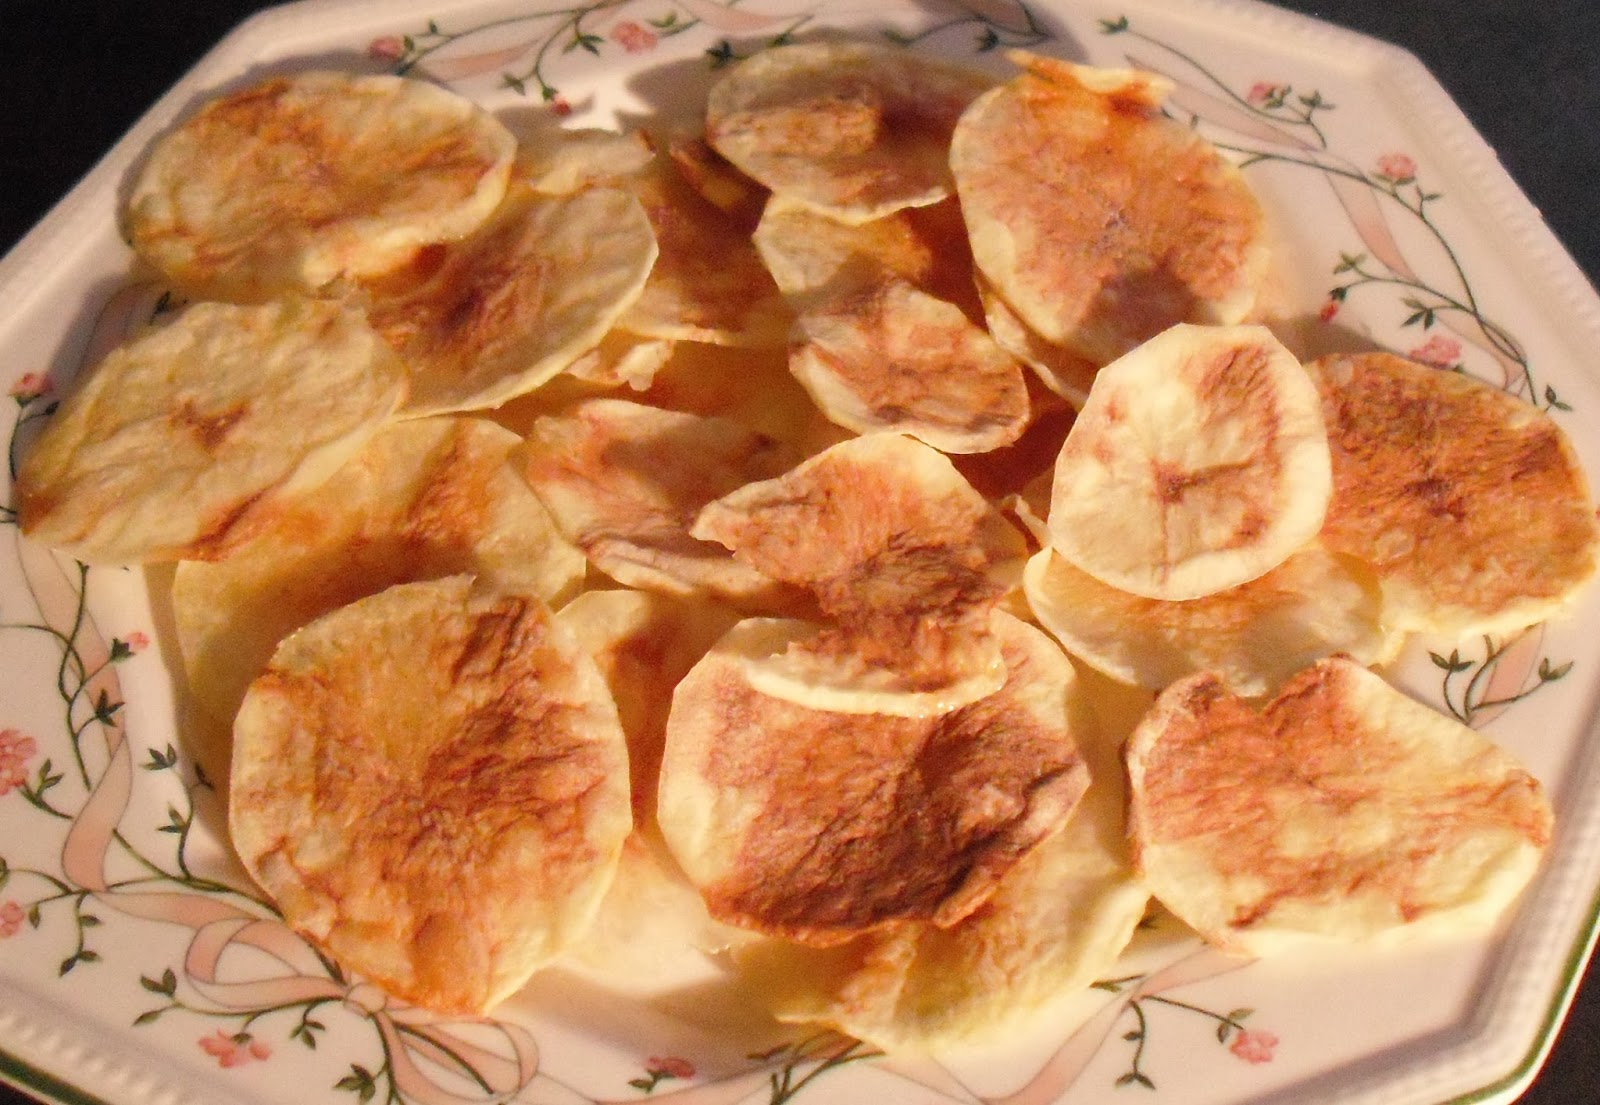 How to make your own crisps